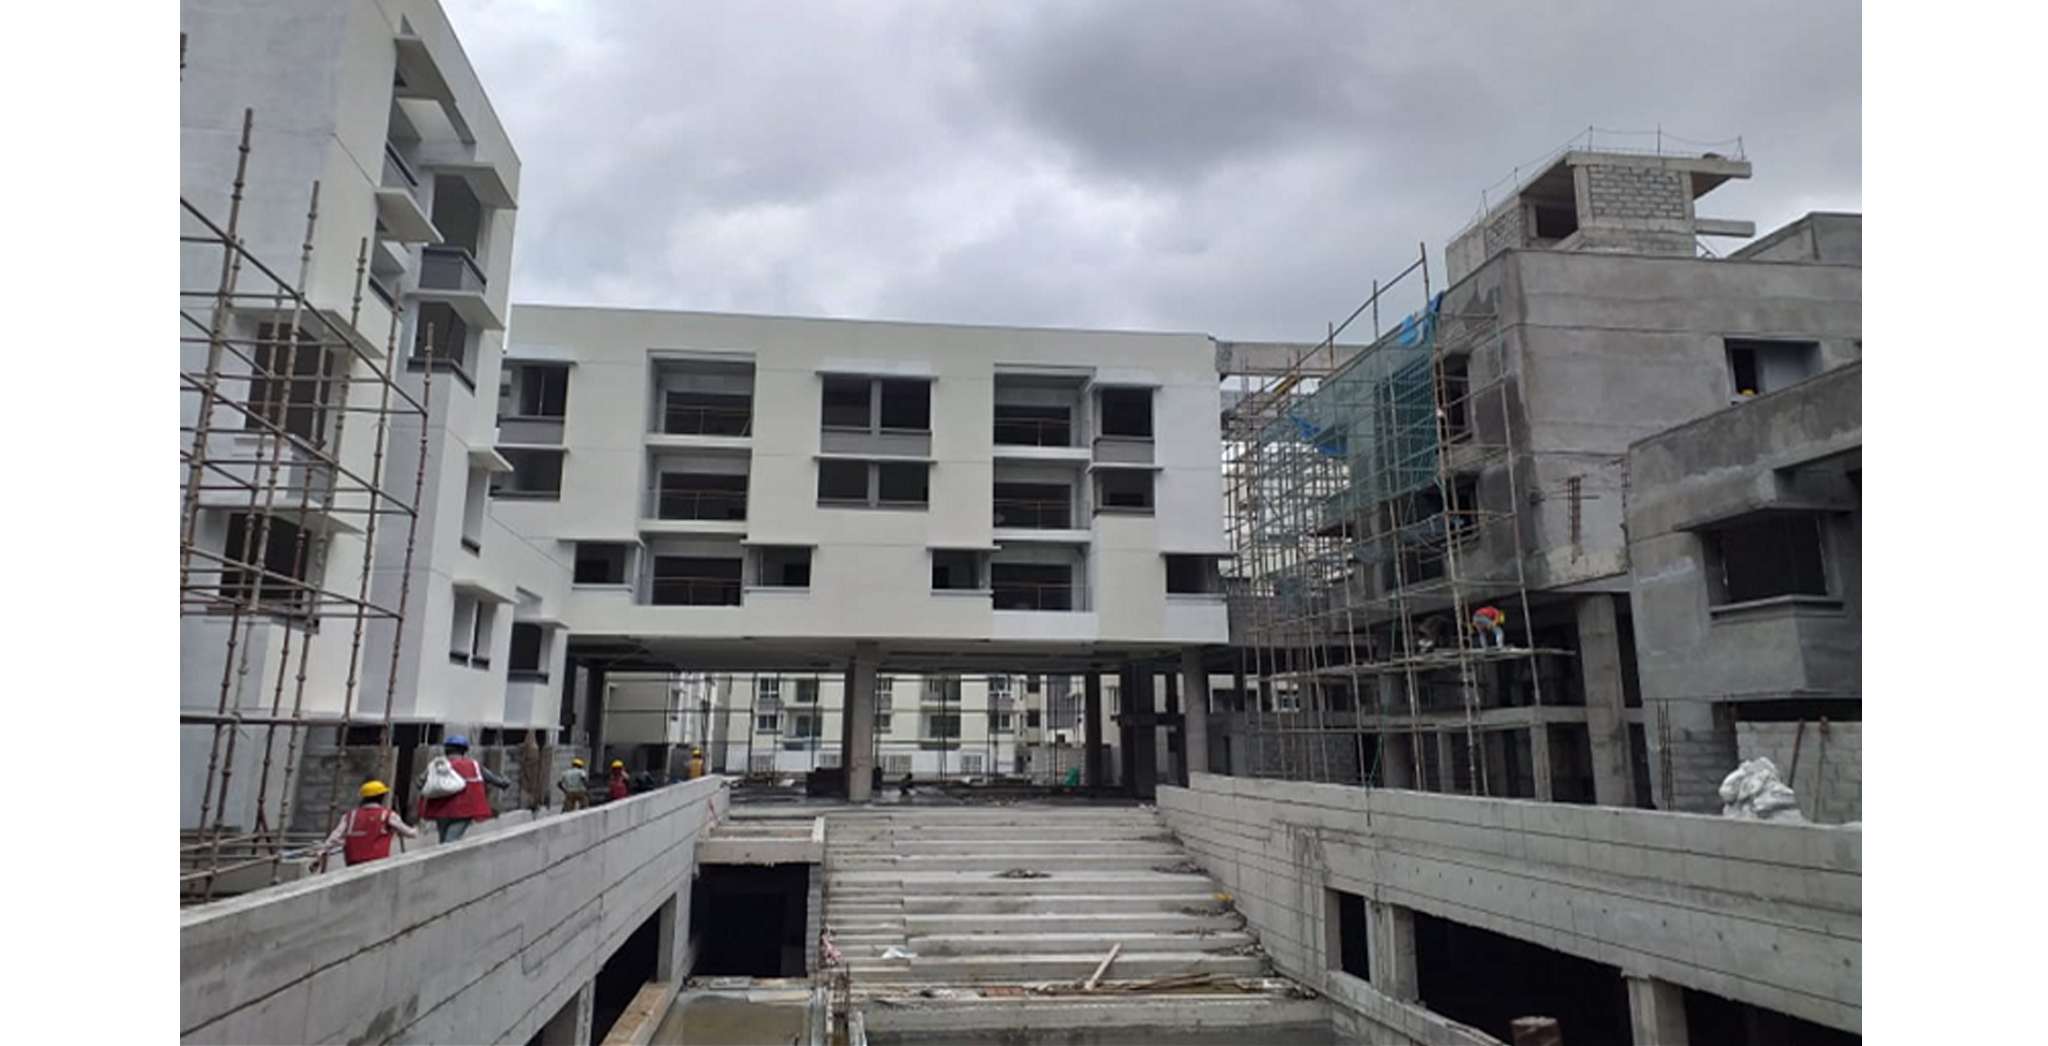 Aug 2021 - Podium Side: Block H - External plastering works completed, painting works in progress